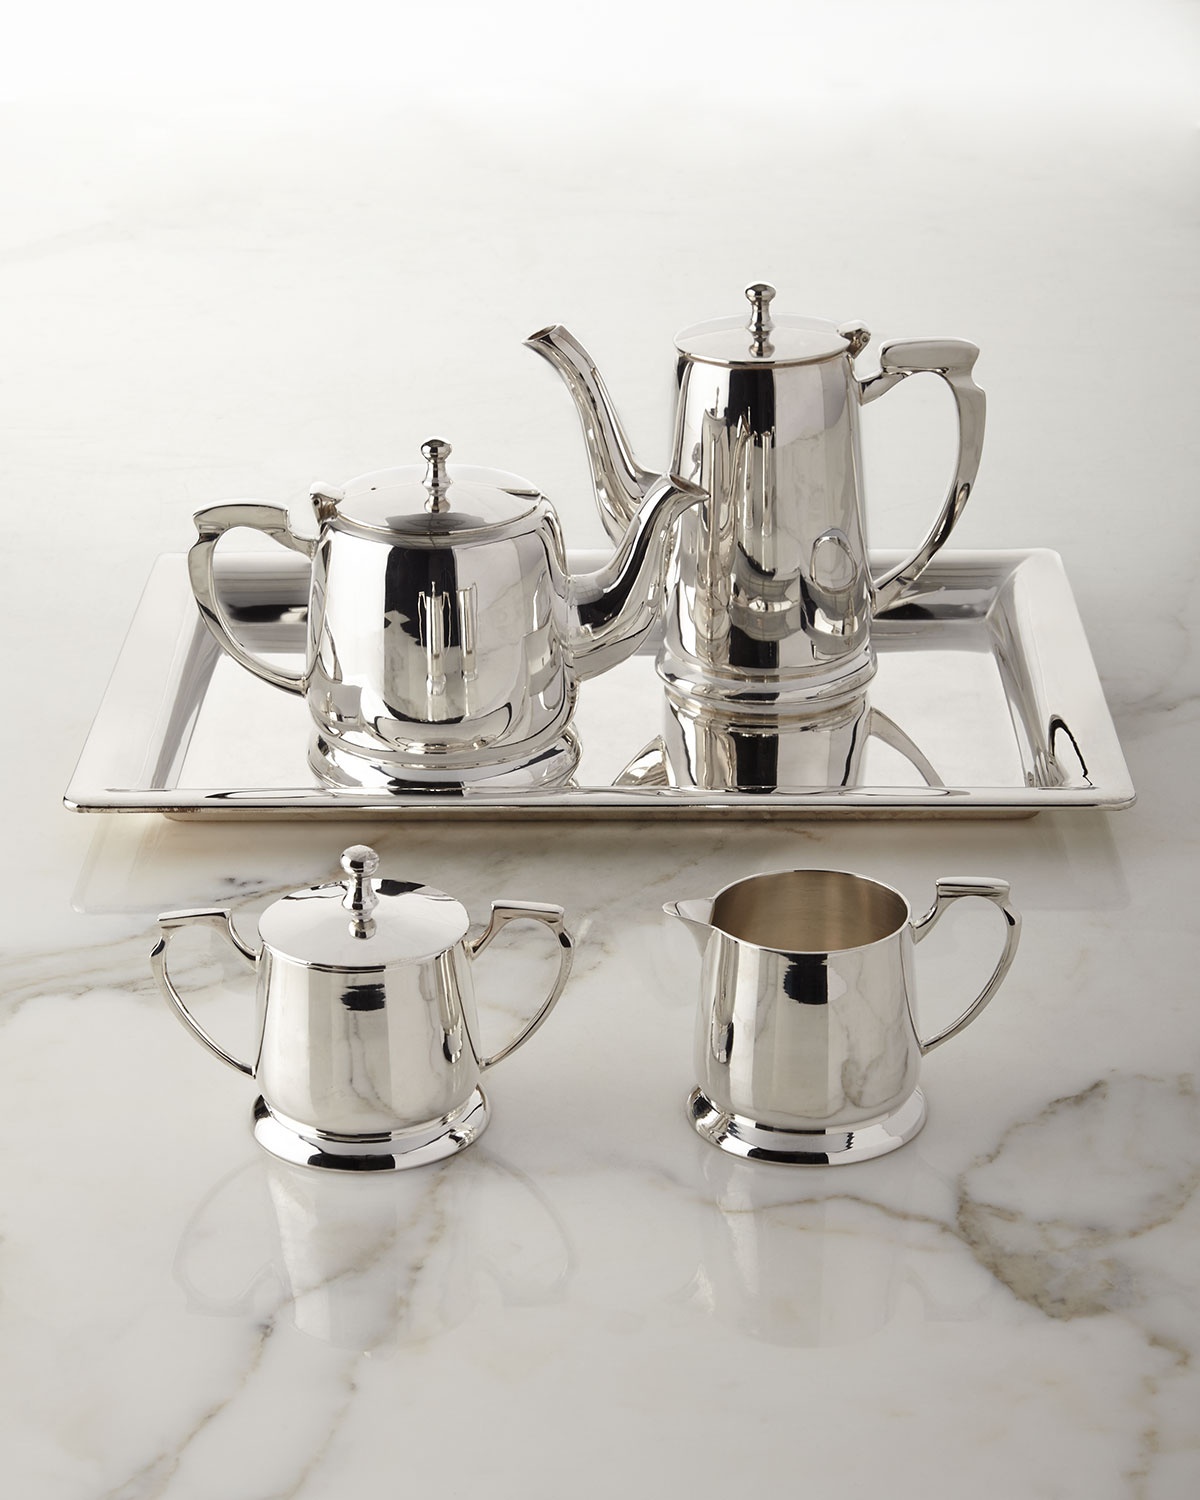 Wedding Gift Stores Nyc: Godinger Hotel Coffee Service